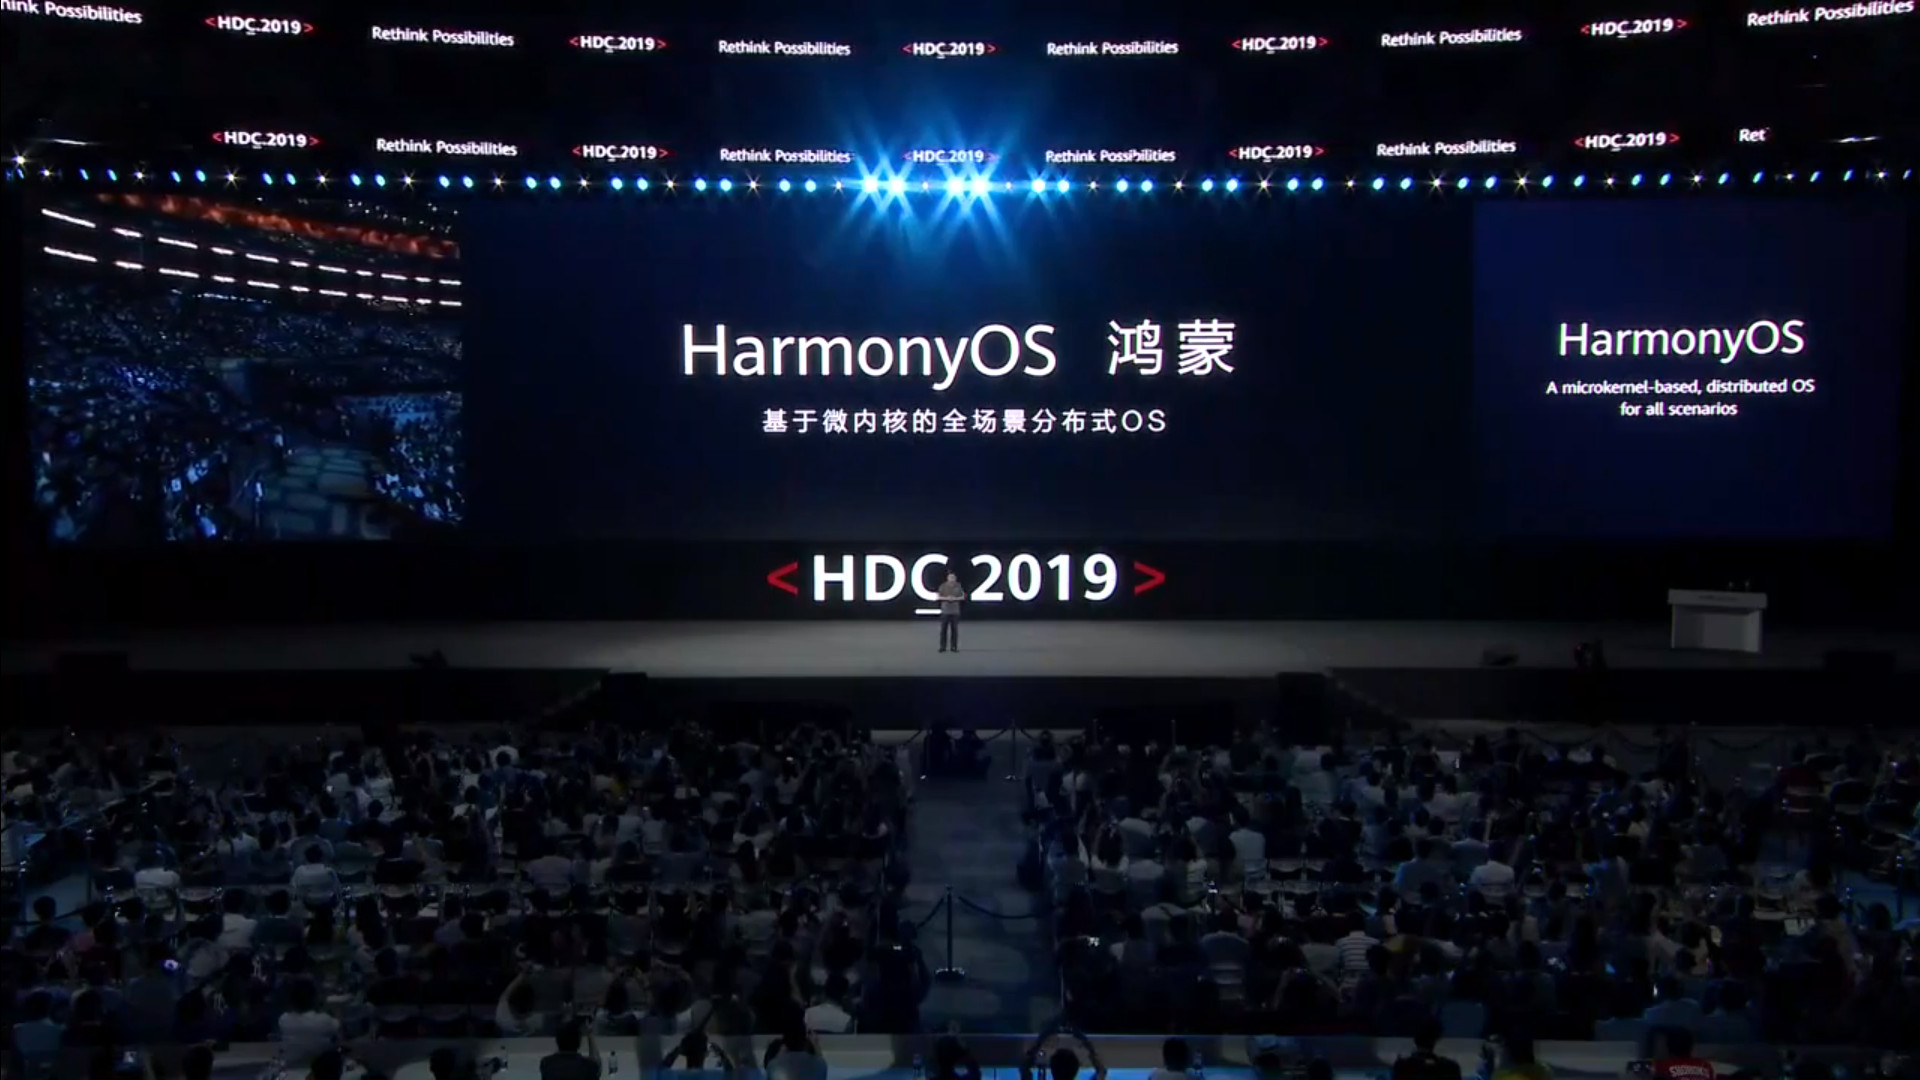 Huawei Introduces HarmonyOS- All New Distributed Operating System